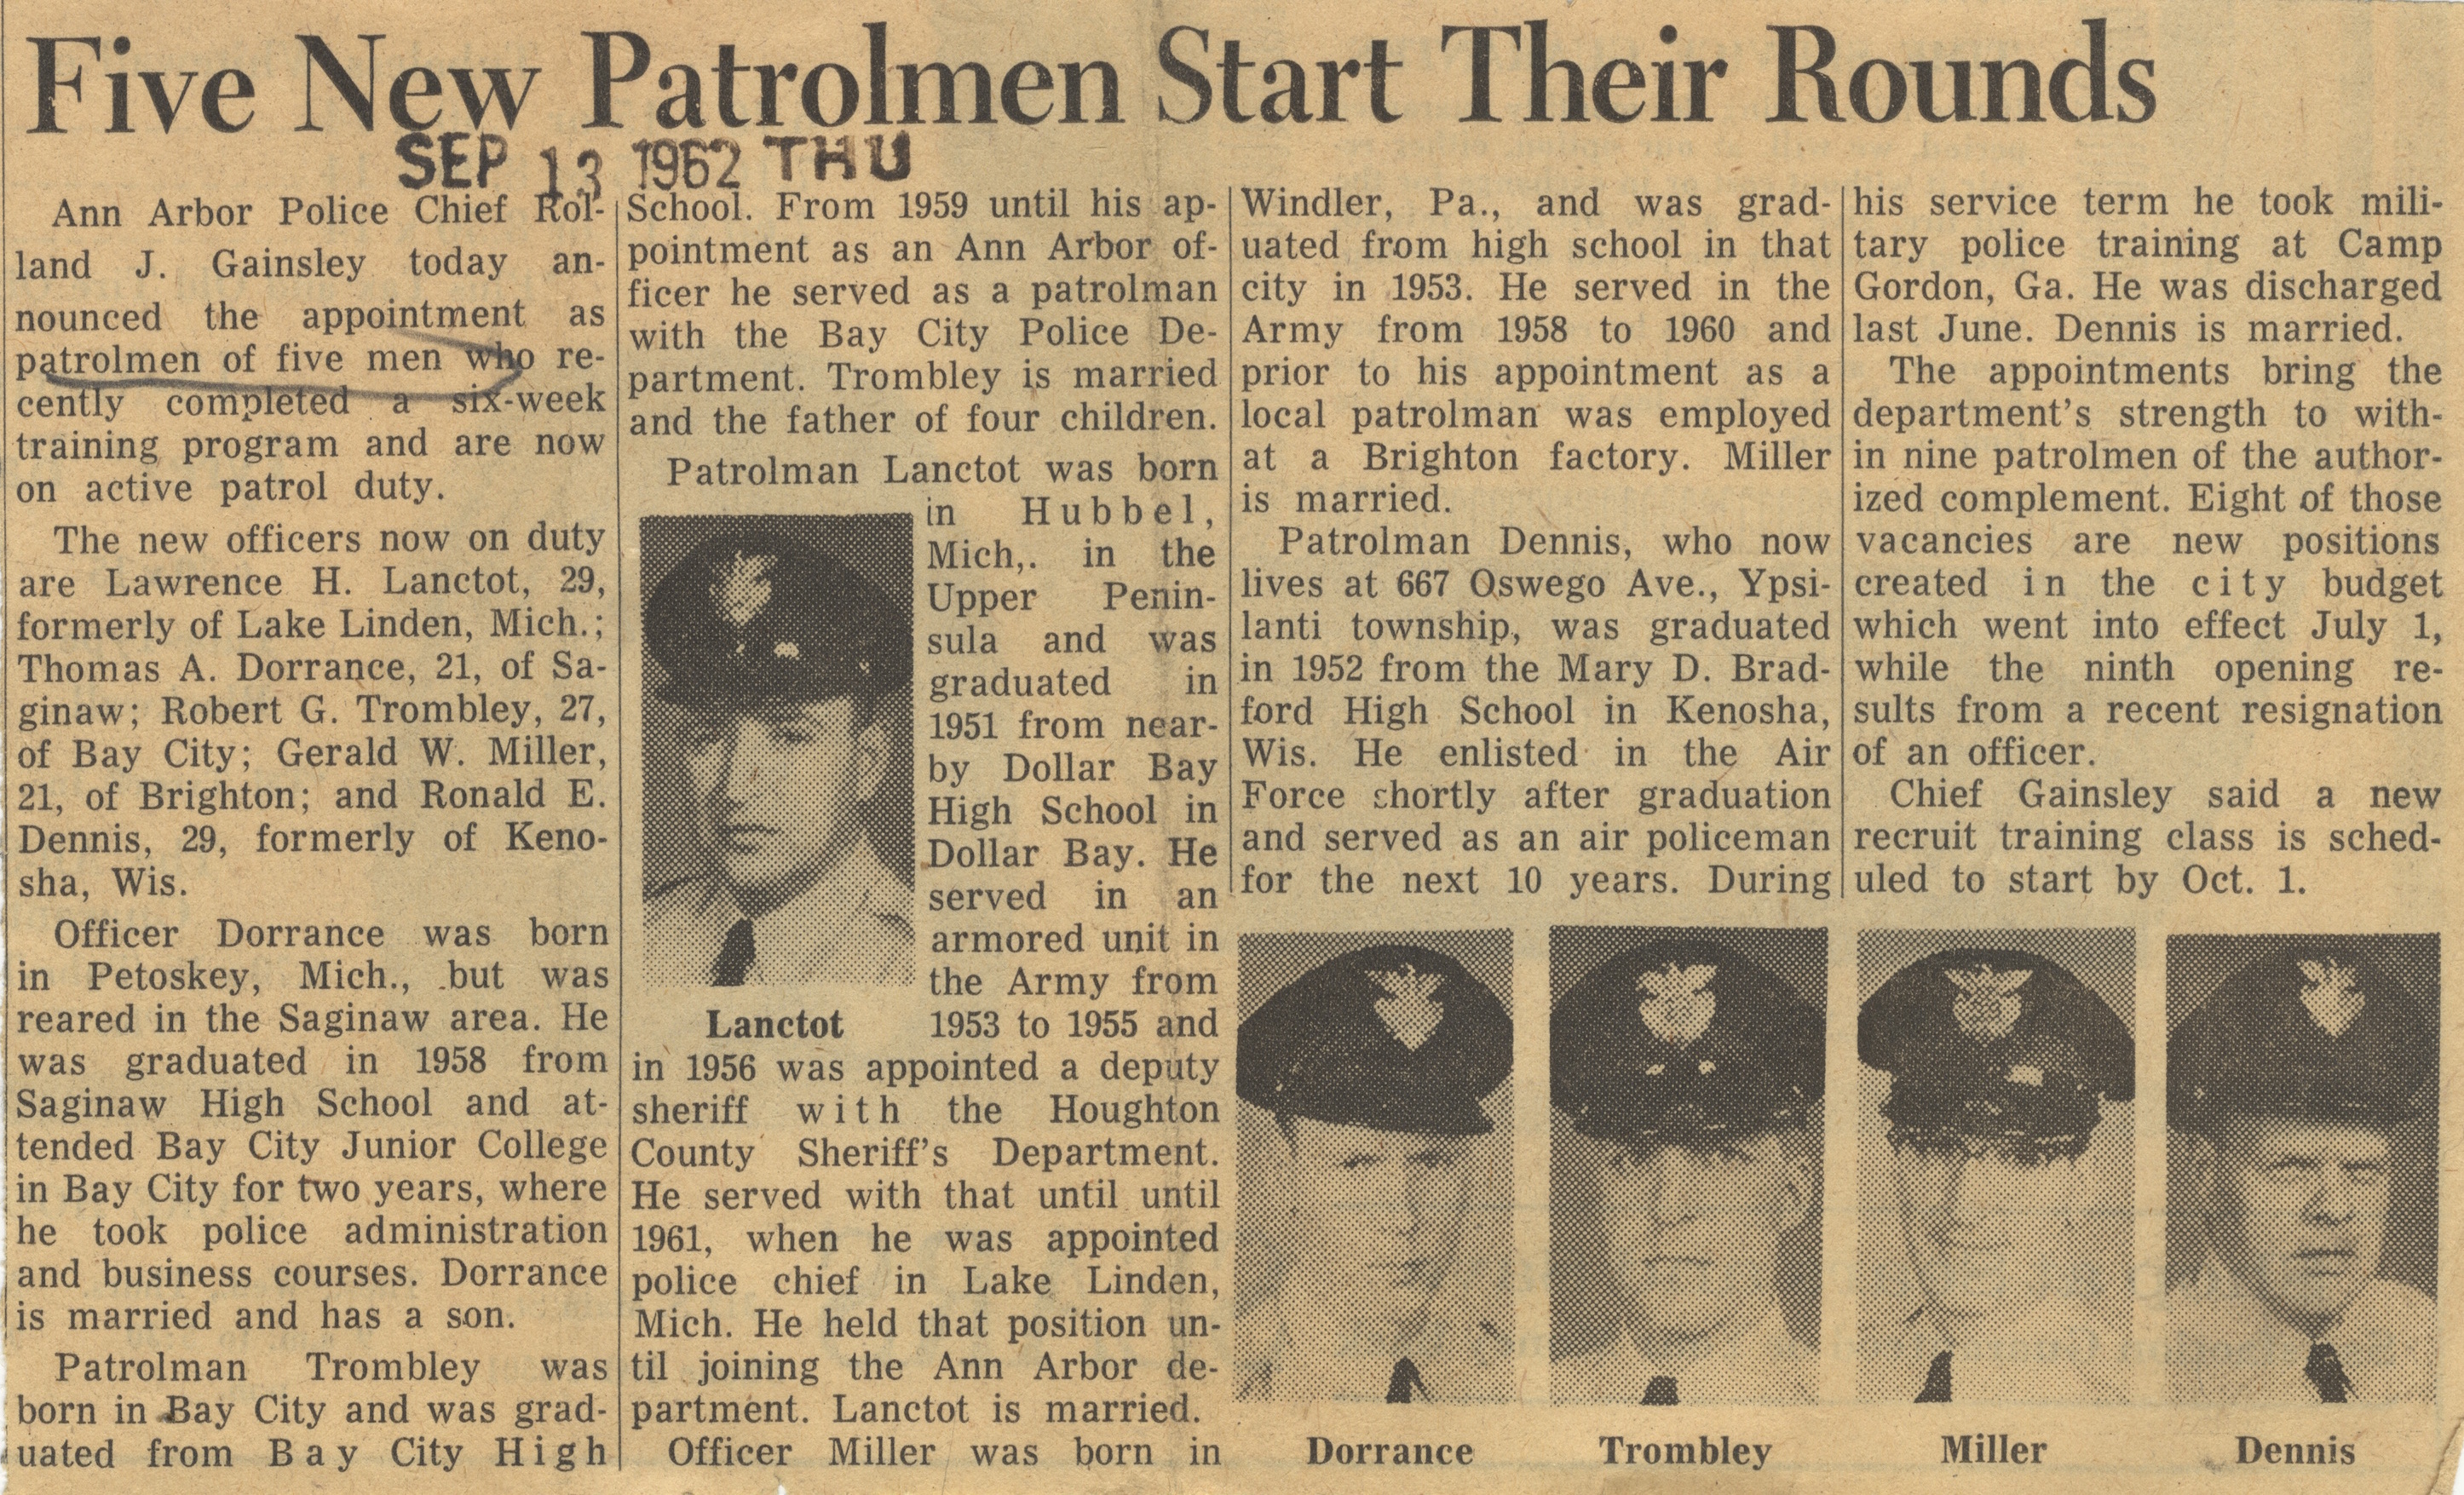 Five New Patrolmen Start Their Rounds image